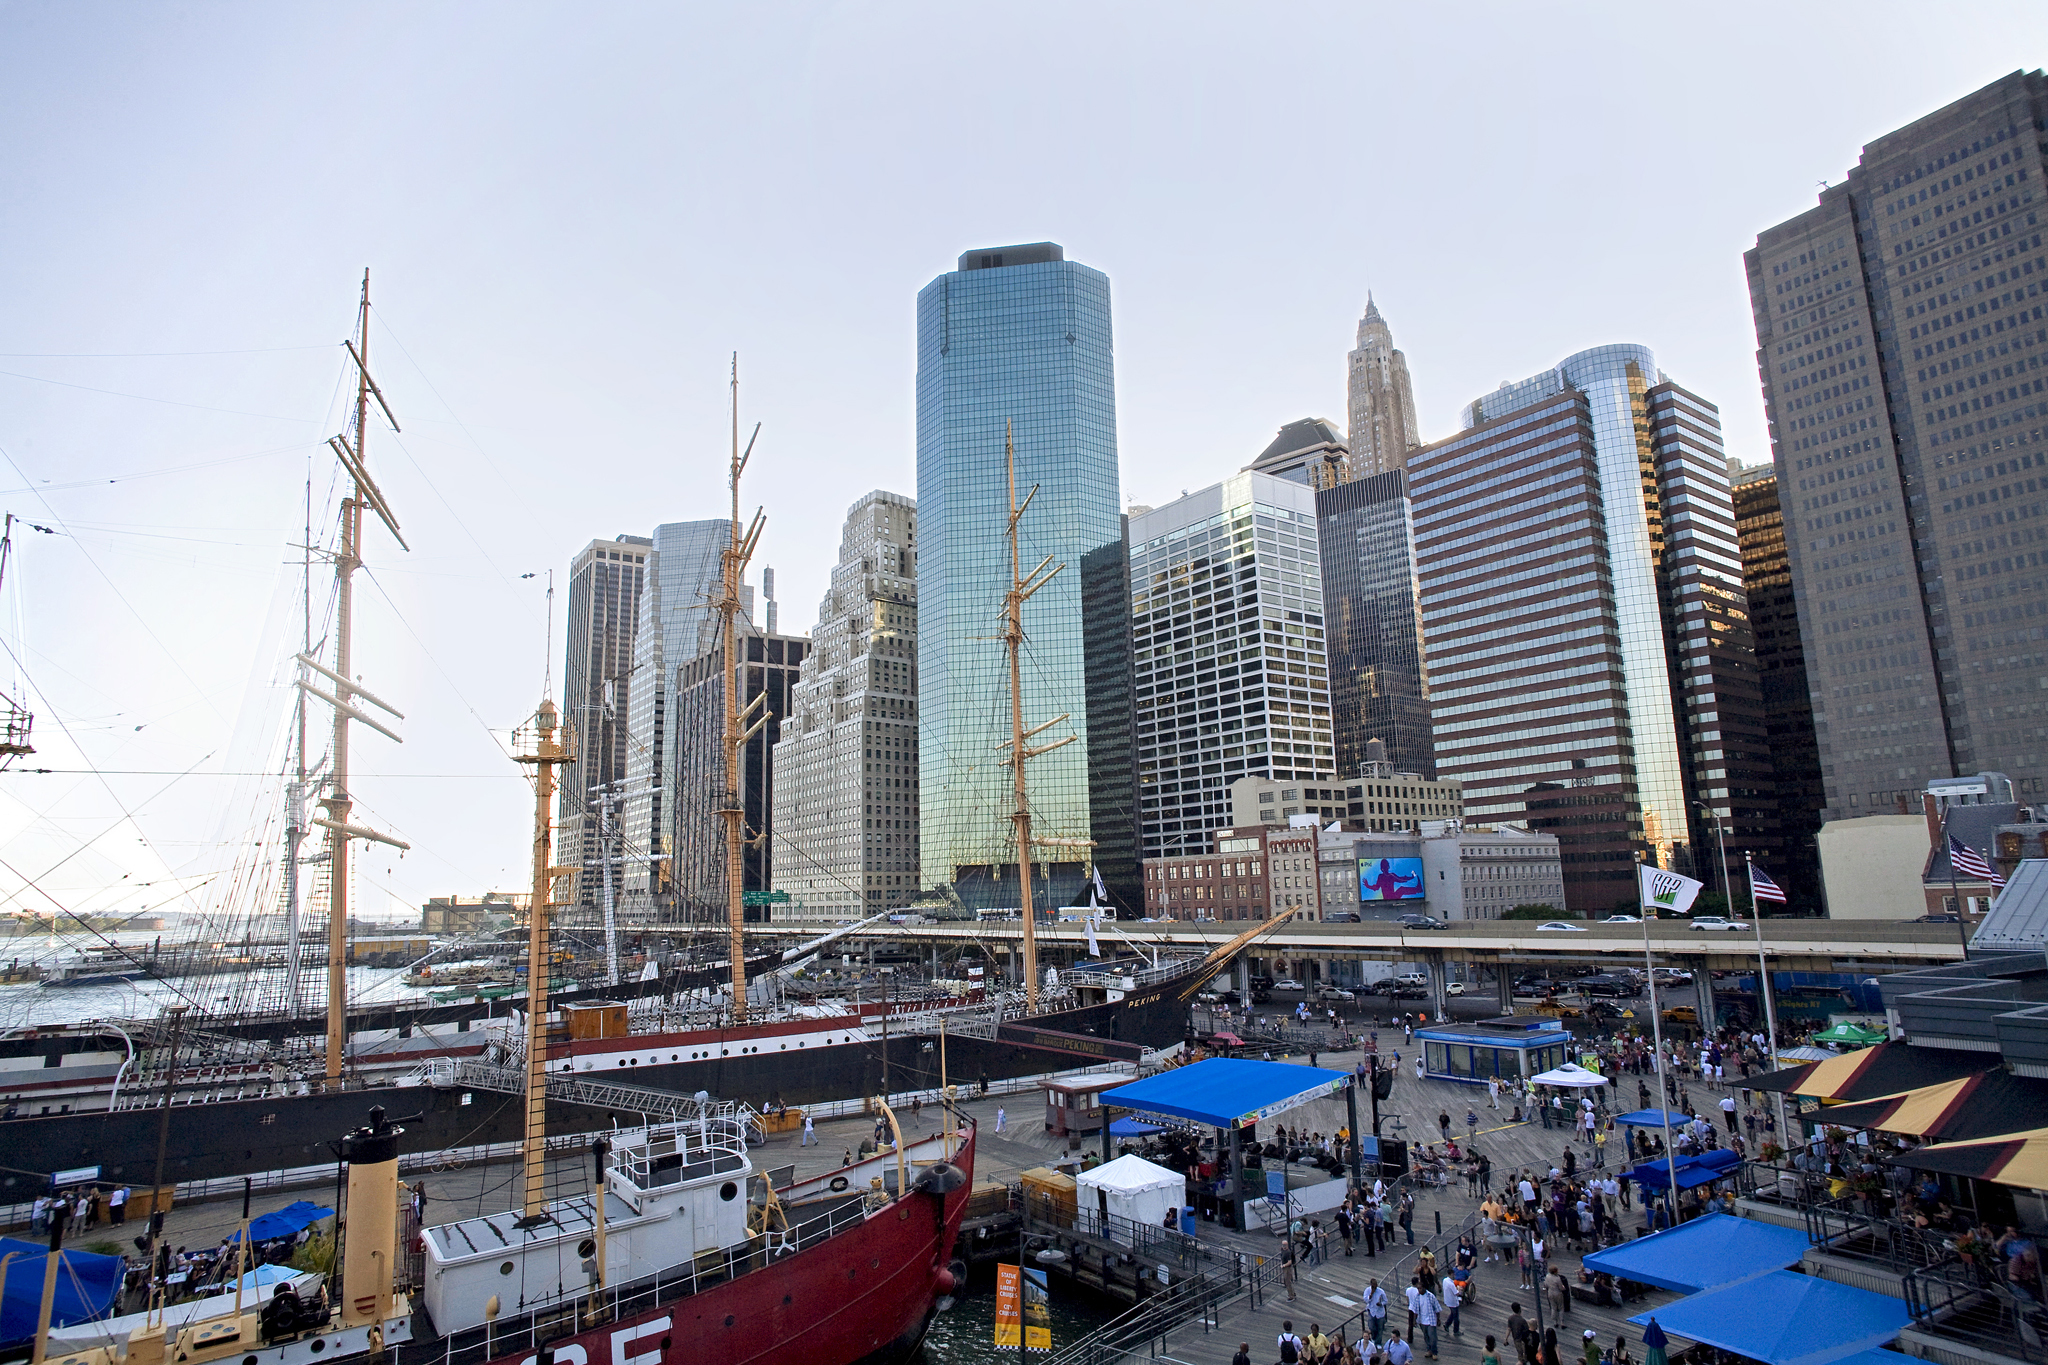 Festival of Independence brings free indie rock to the Seaport this 4th of July